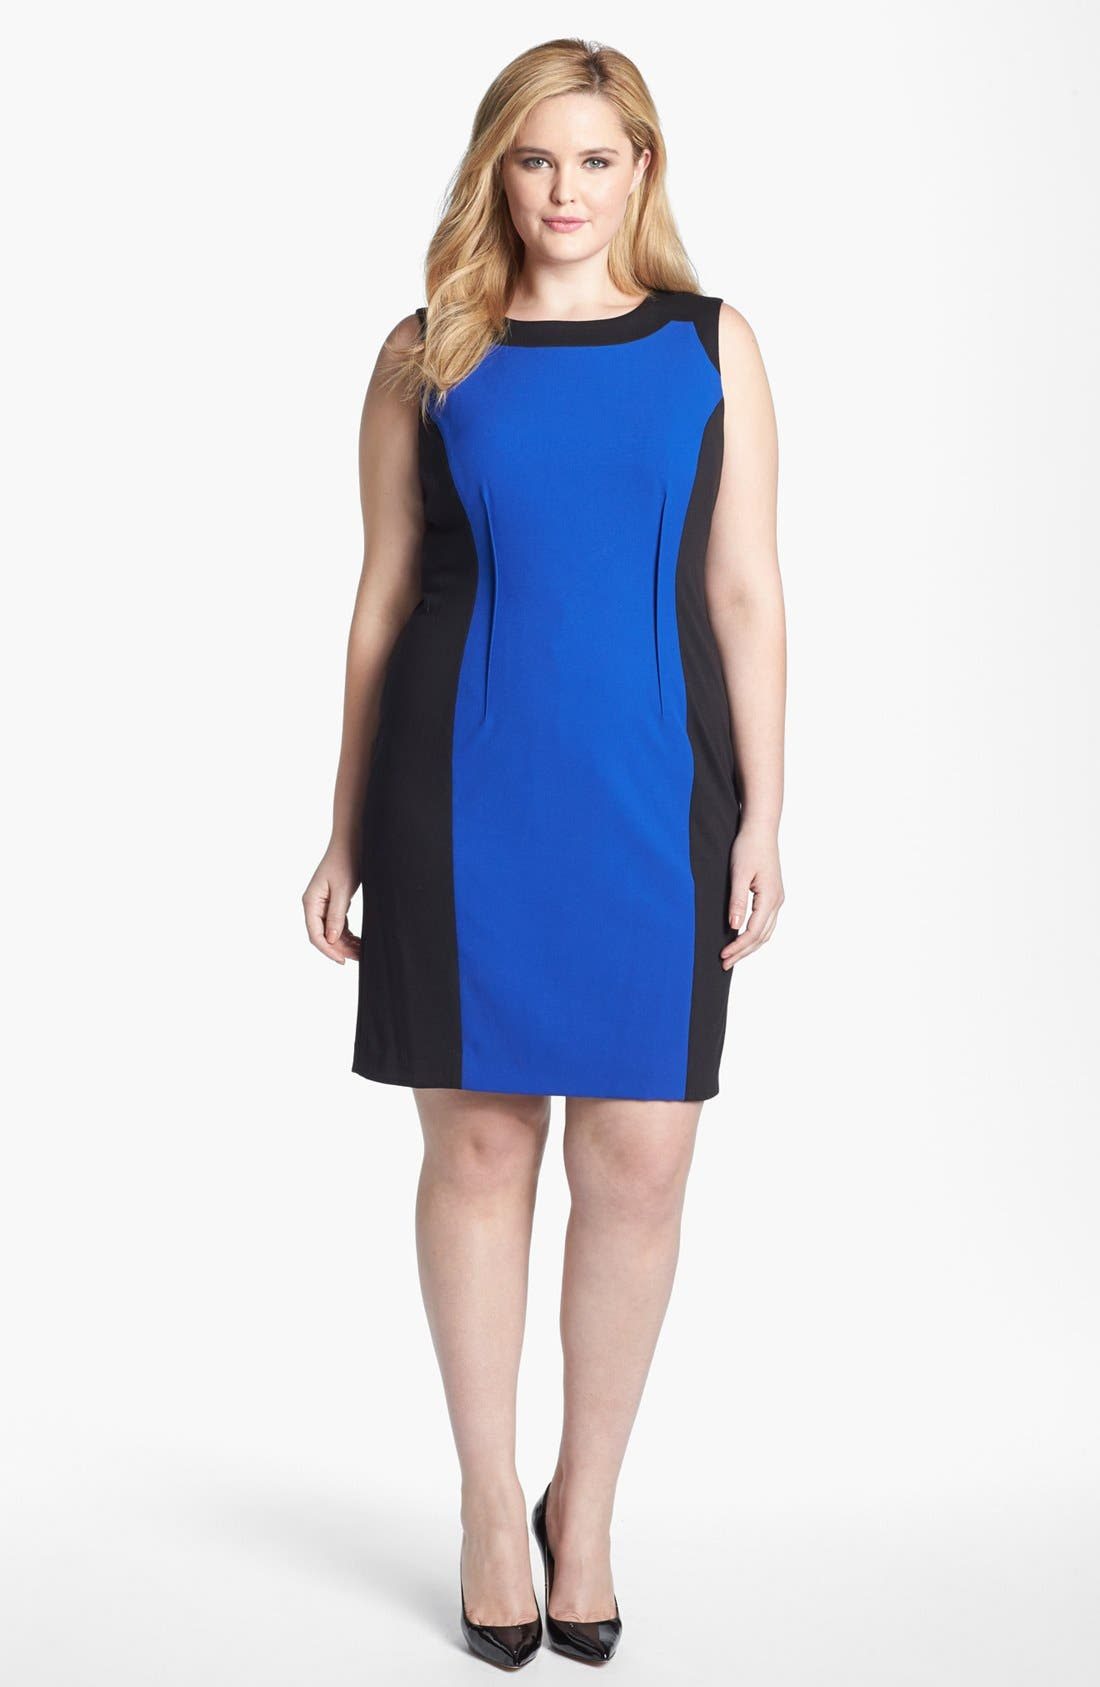 Main Image - Calvin Klein Sleeveless Colorblock Dress (Plus Size)